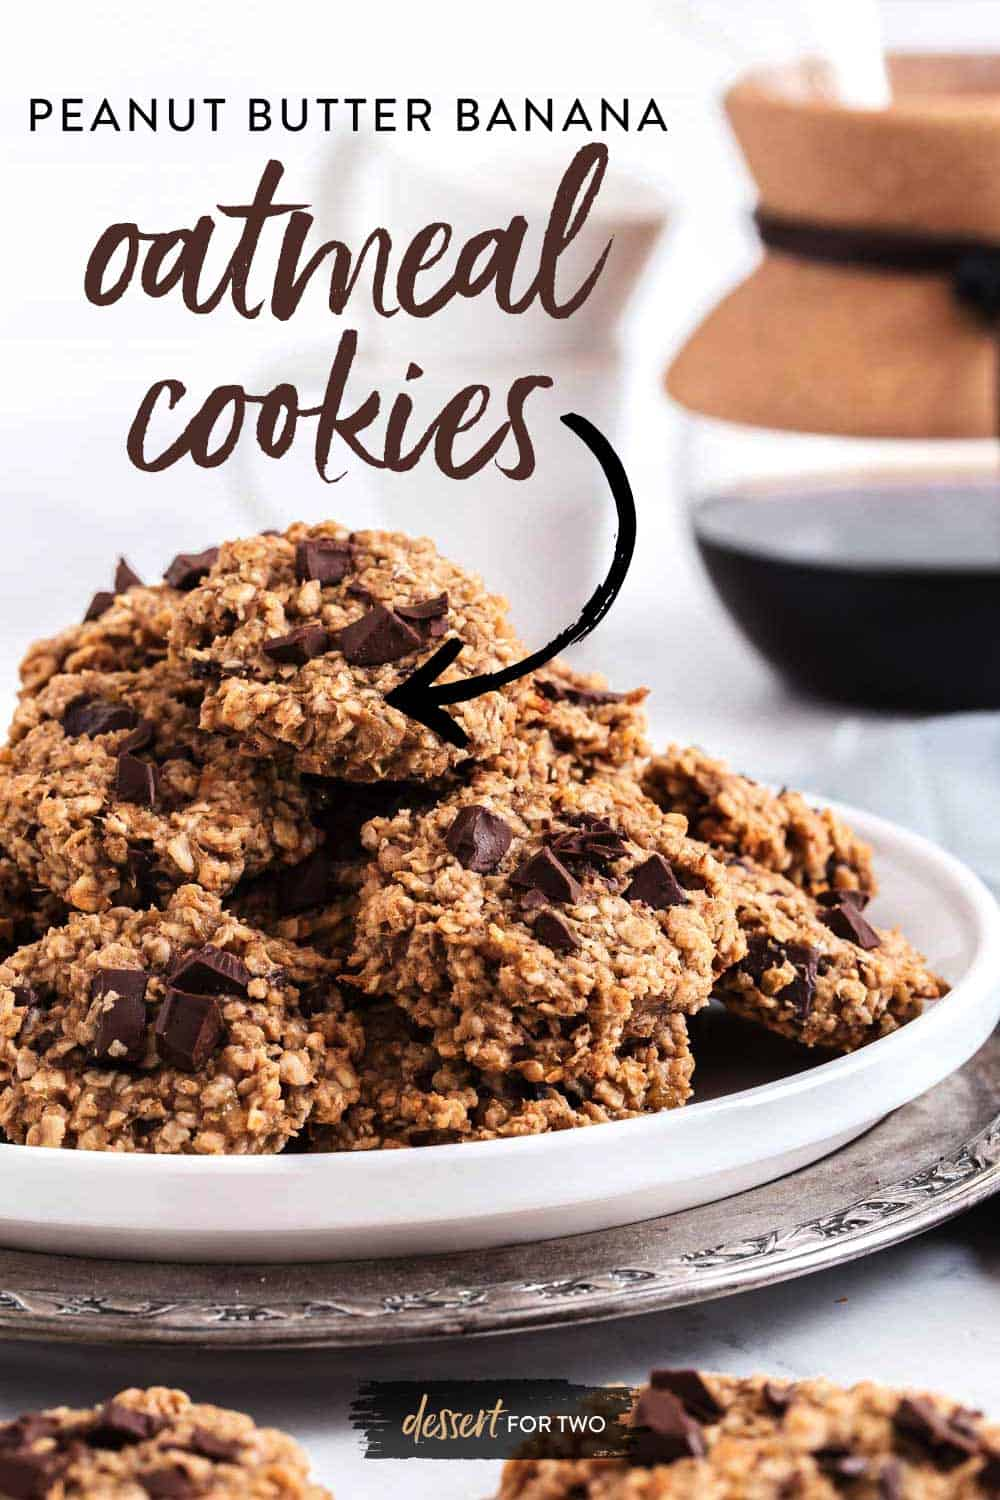 White plate of oatmeal cookies with chocolate chunks.